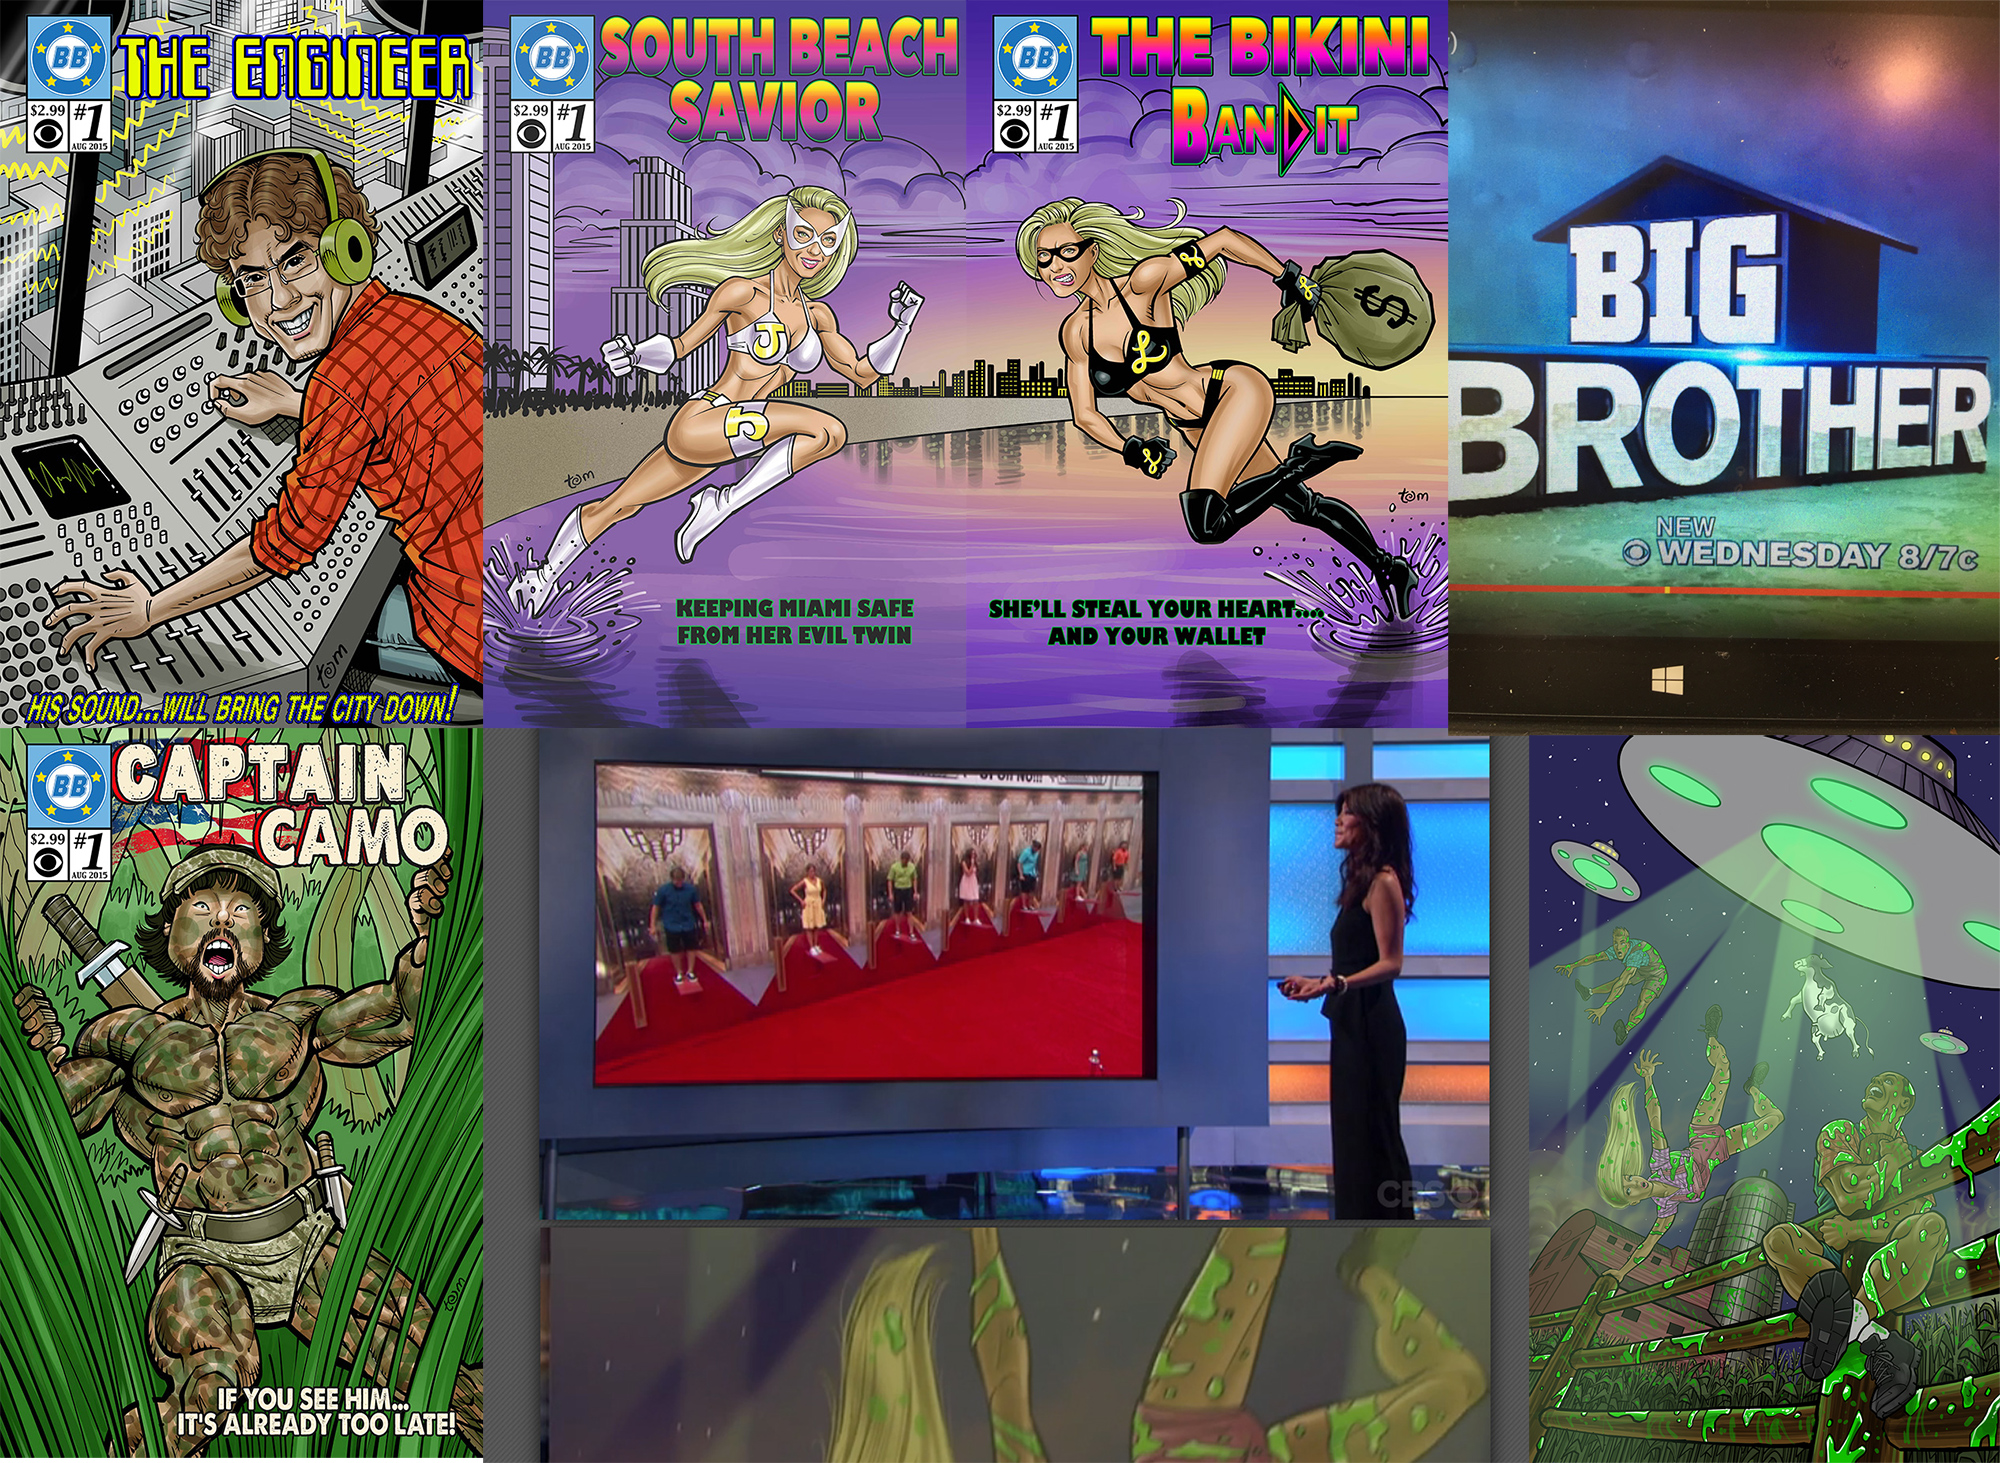 2015 I did quite a bit more television work than in 2014. I was asked back to do artwork for   CBS's Big Brother 17  , and even did some behind-the-scenes concept/storyboard art for the show.  Big thanks to Heath, Jessie, Andrew, and Shukra for the opportunity!